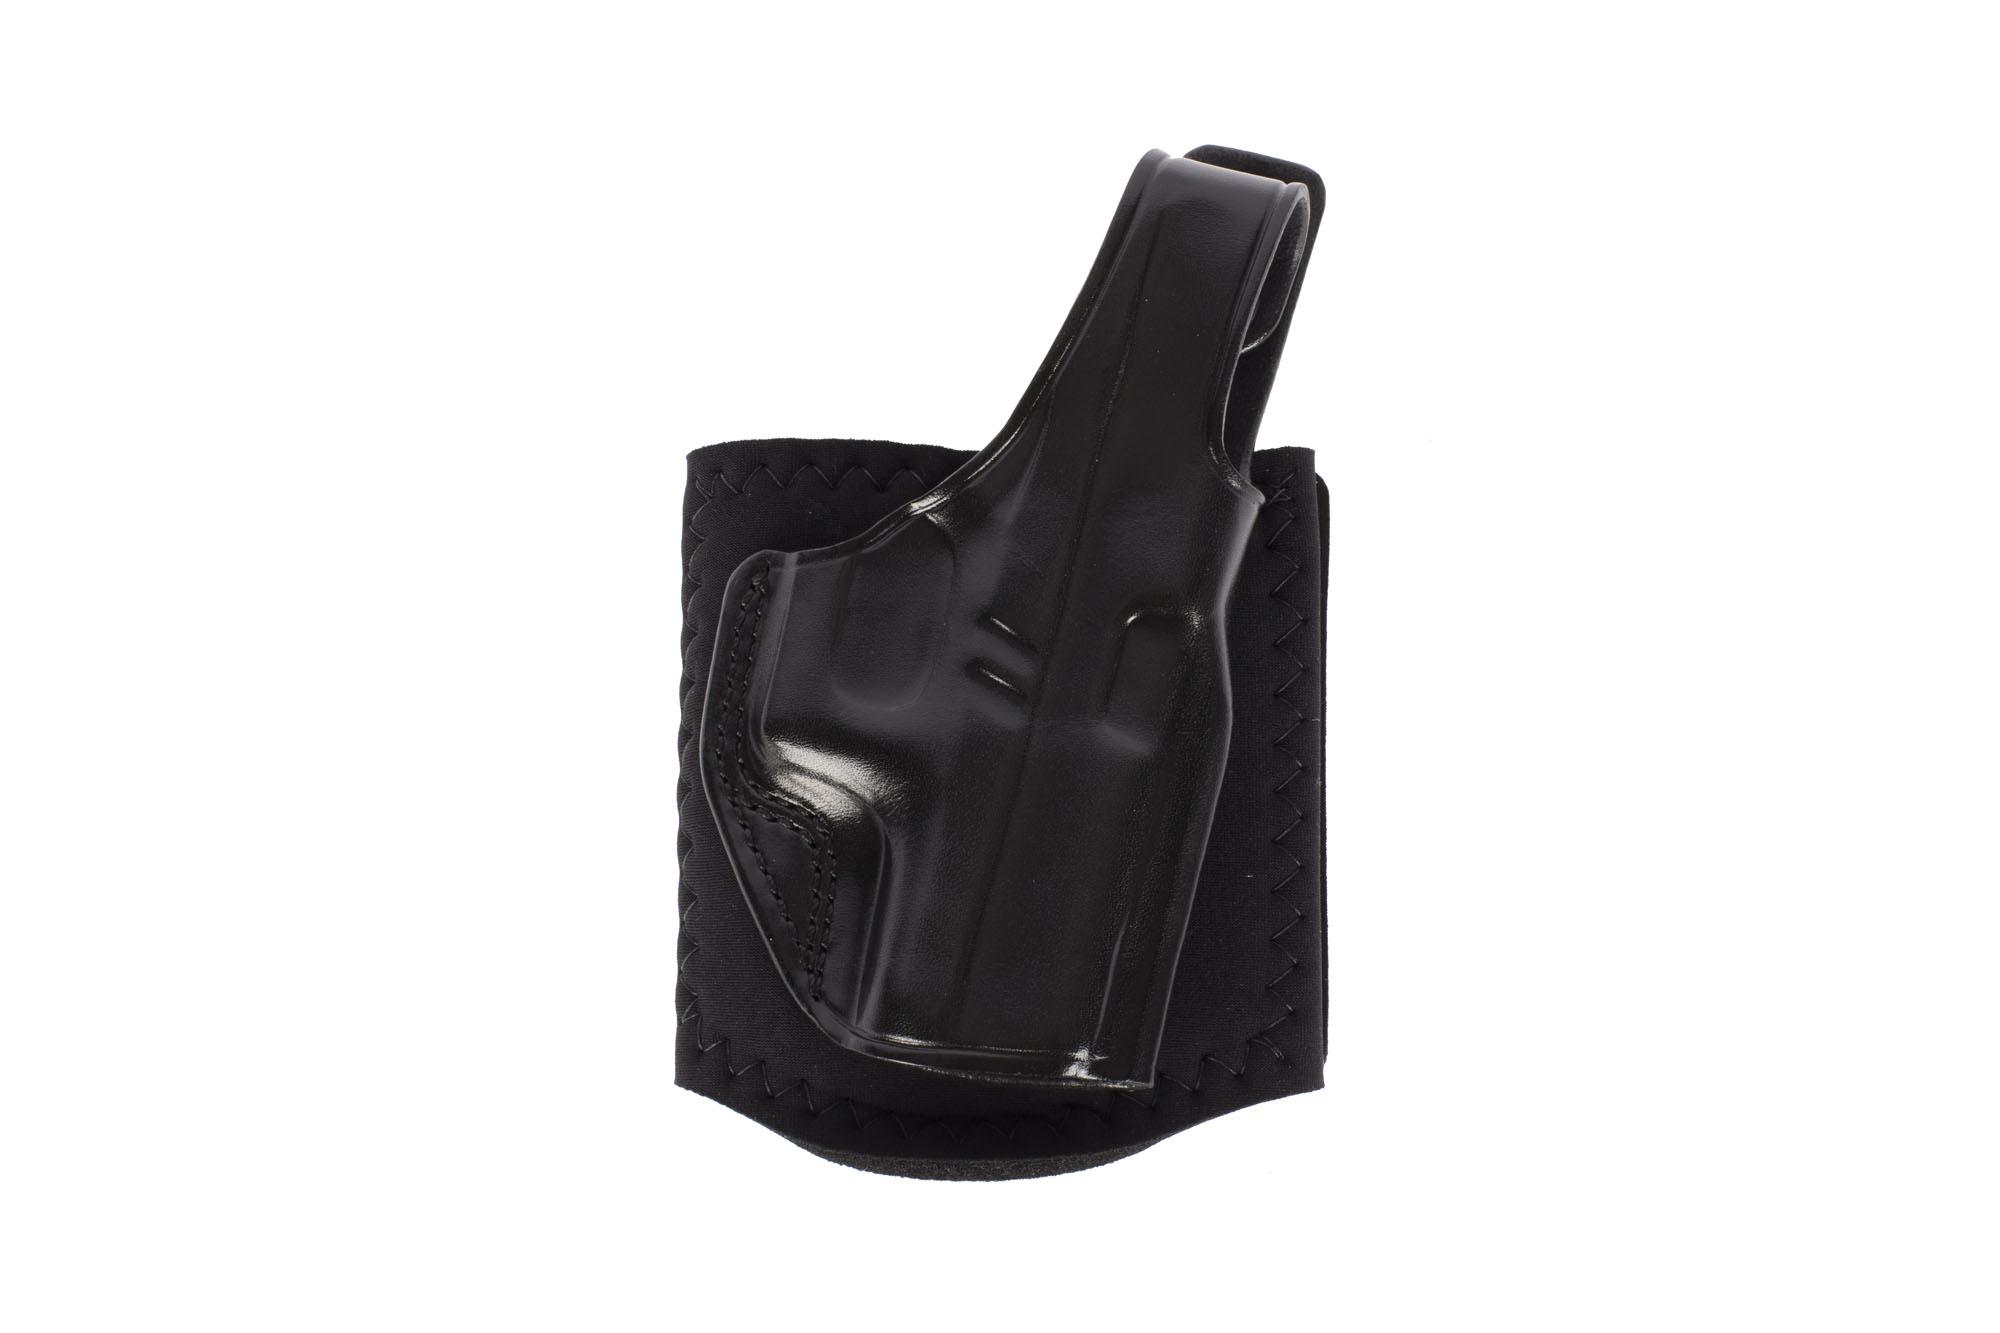 Galco Ankle Glove Holster - GLOCK 43 - Right Hand - Black Leather